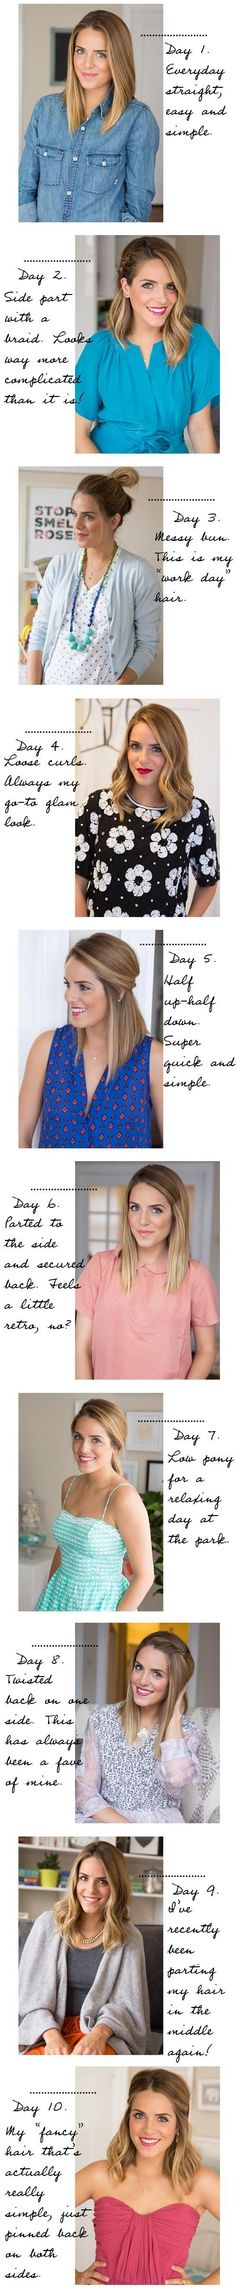 Shoulder Length Hair Styles - I really should put in a little more effort with my hair!